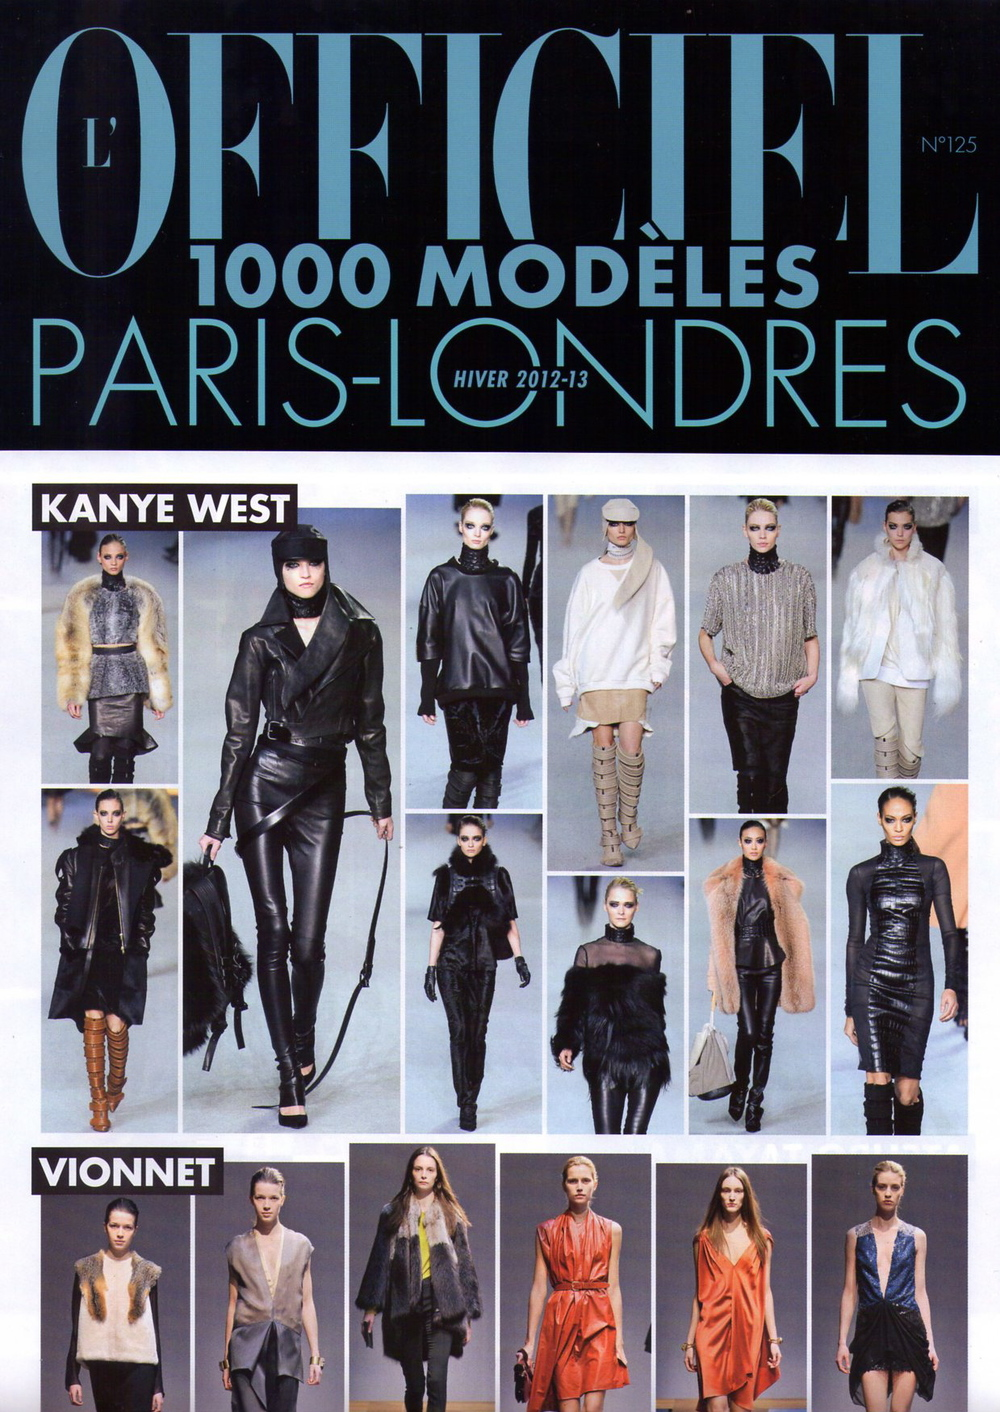 Copy of L'OFFICIEL, France